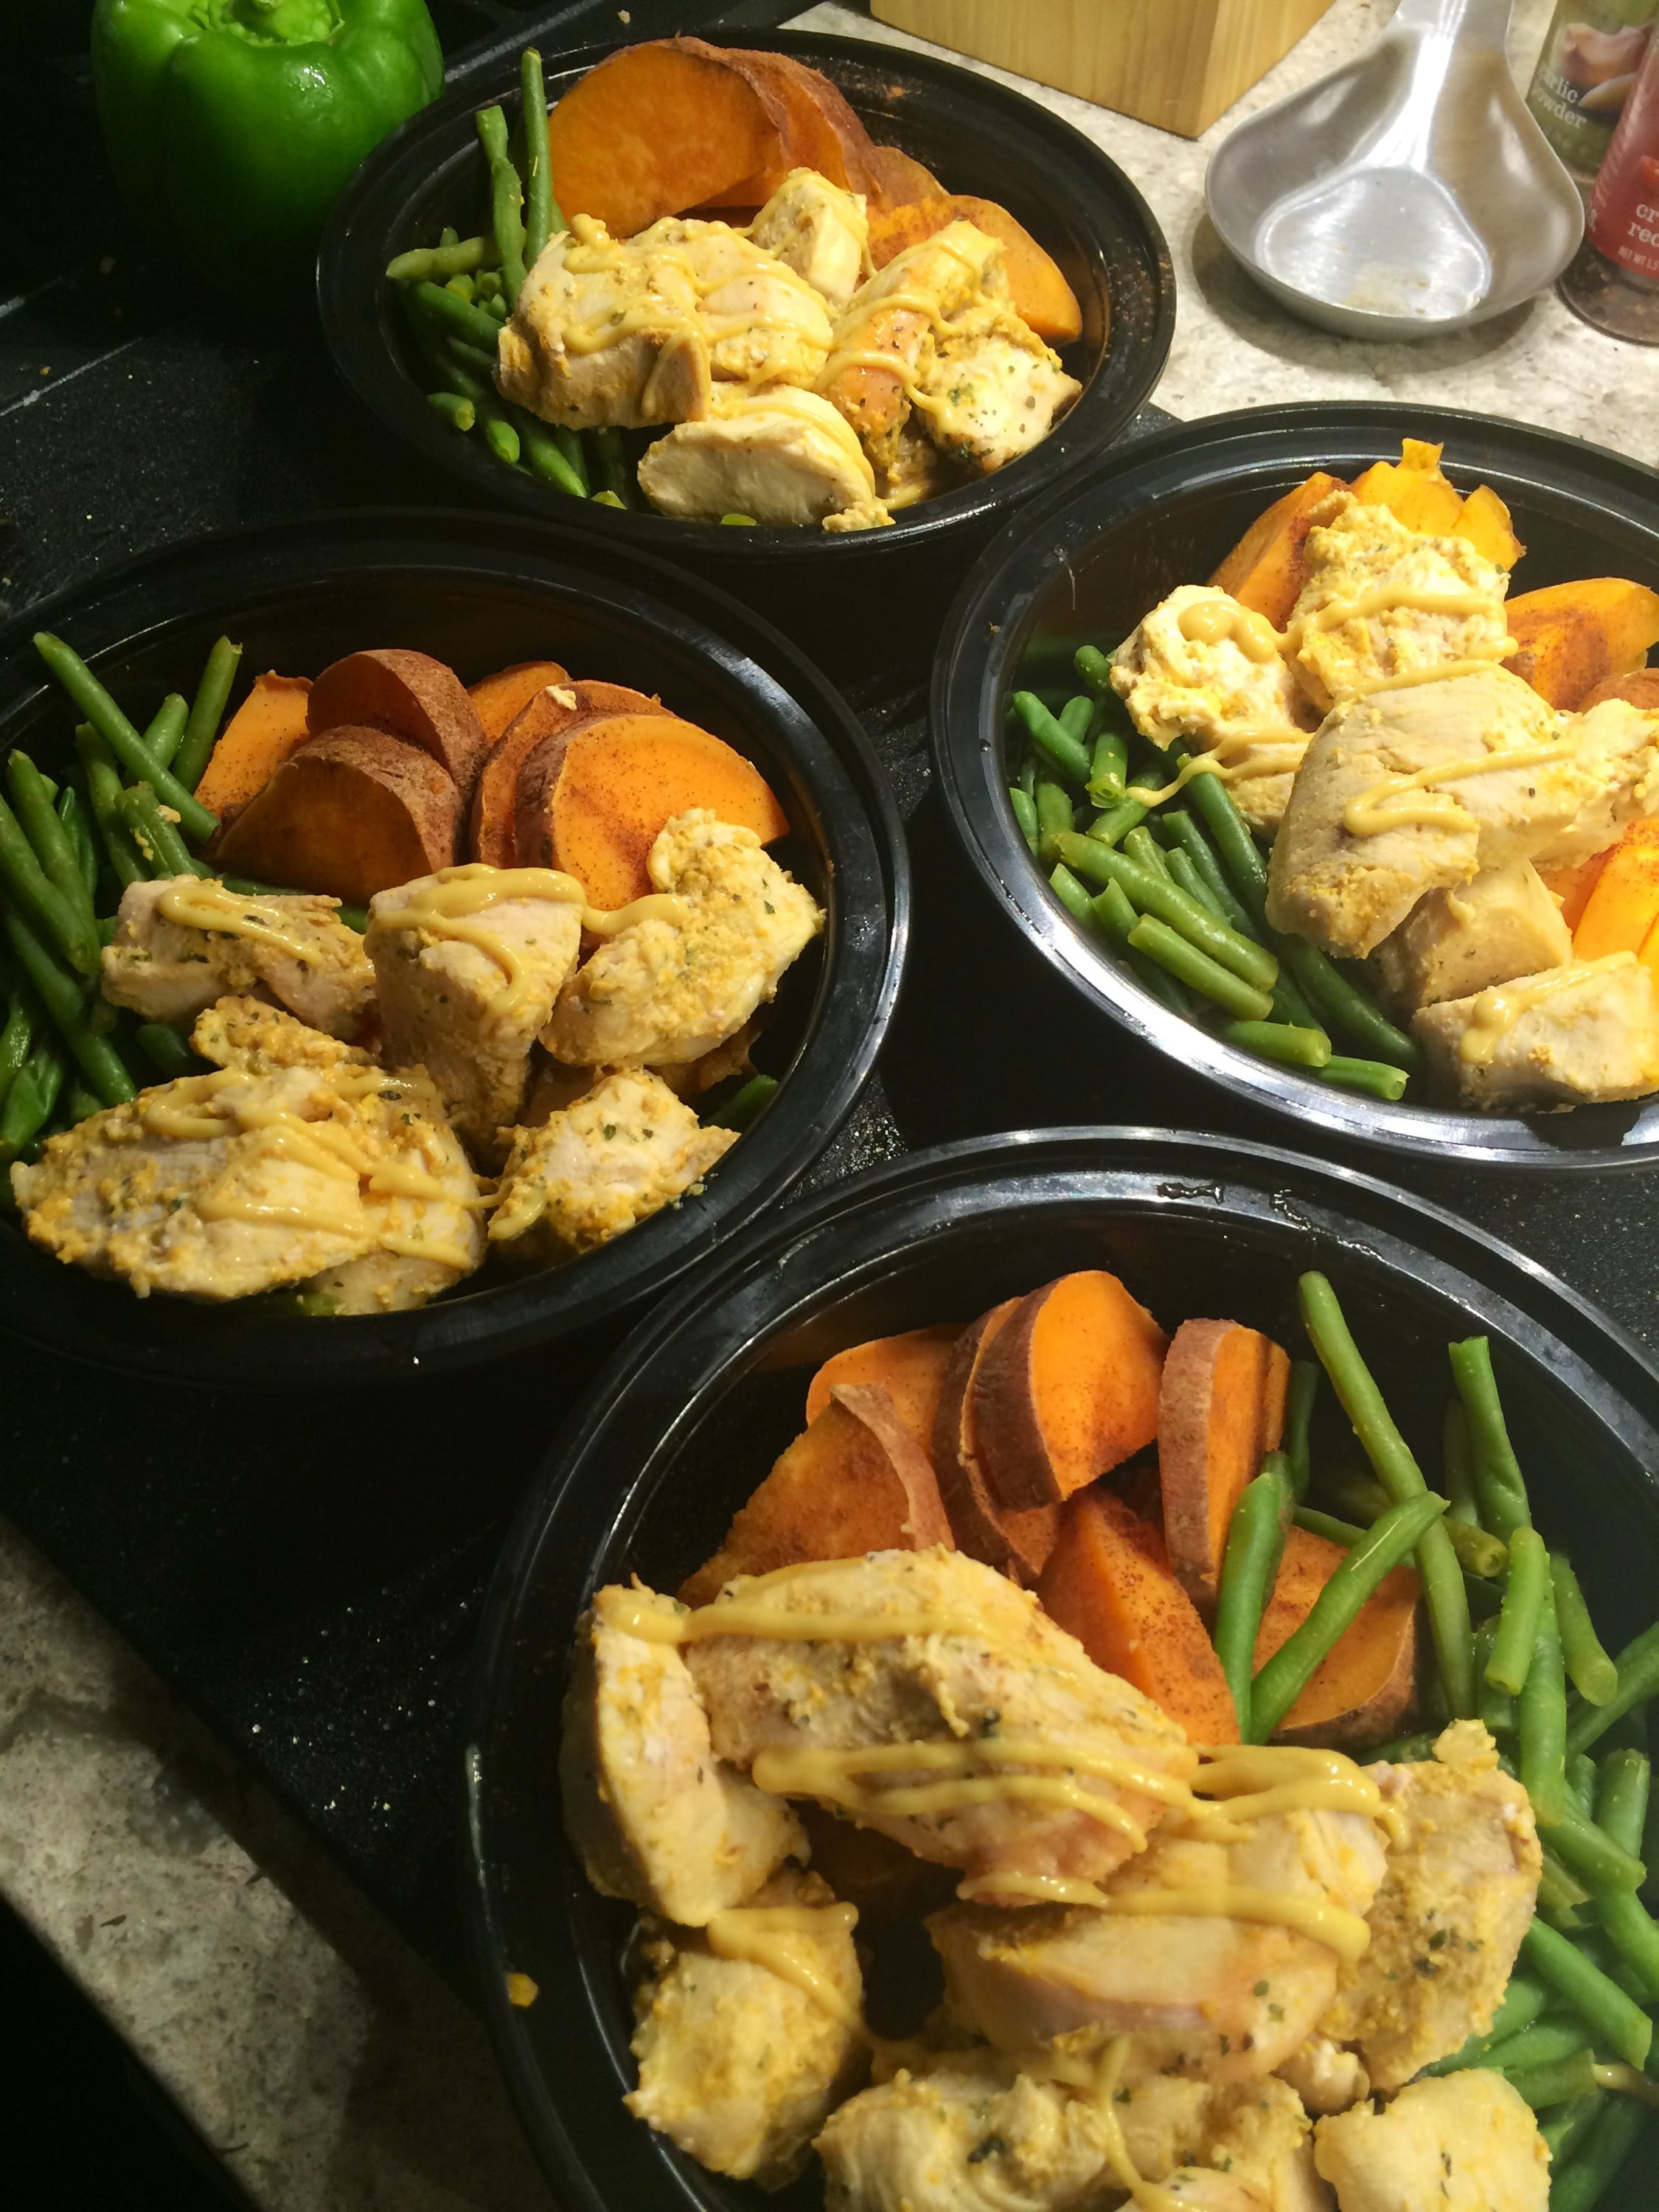 low carb high protein meal ideas weekly plans terrific prep ahead tips via jersey girl talk. Black Bedroom Furniture Sets. Home Design Ideas